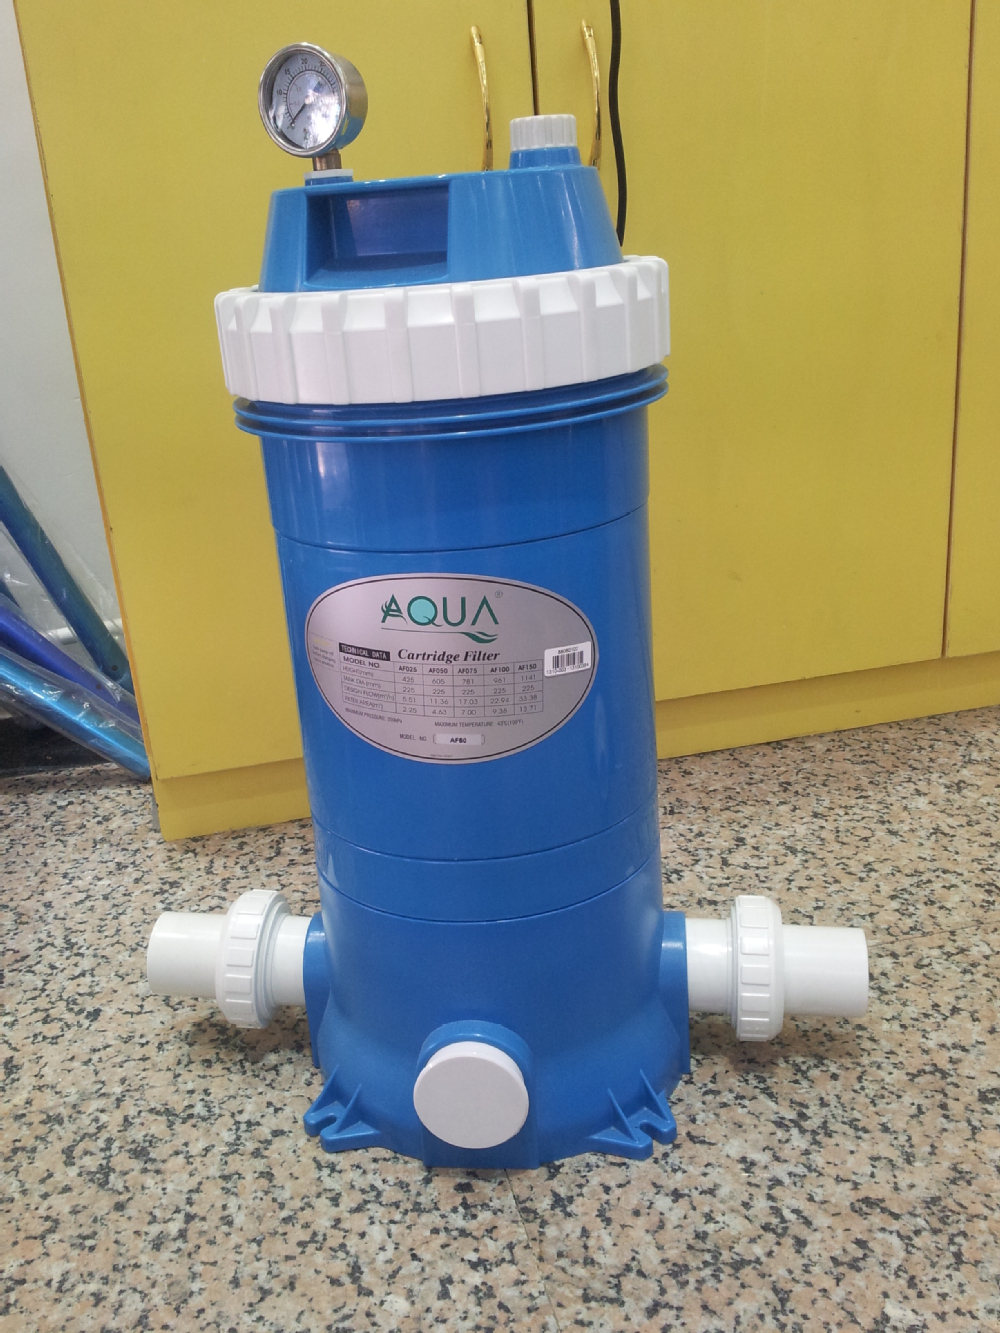 Swimming Pool Filter Cartridge For Water Filtration System Pool Pump And Cartridge Filter Buy